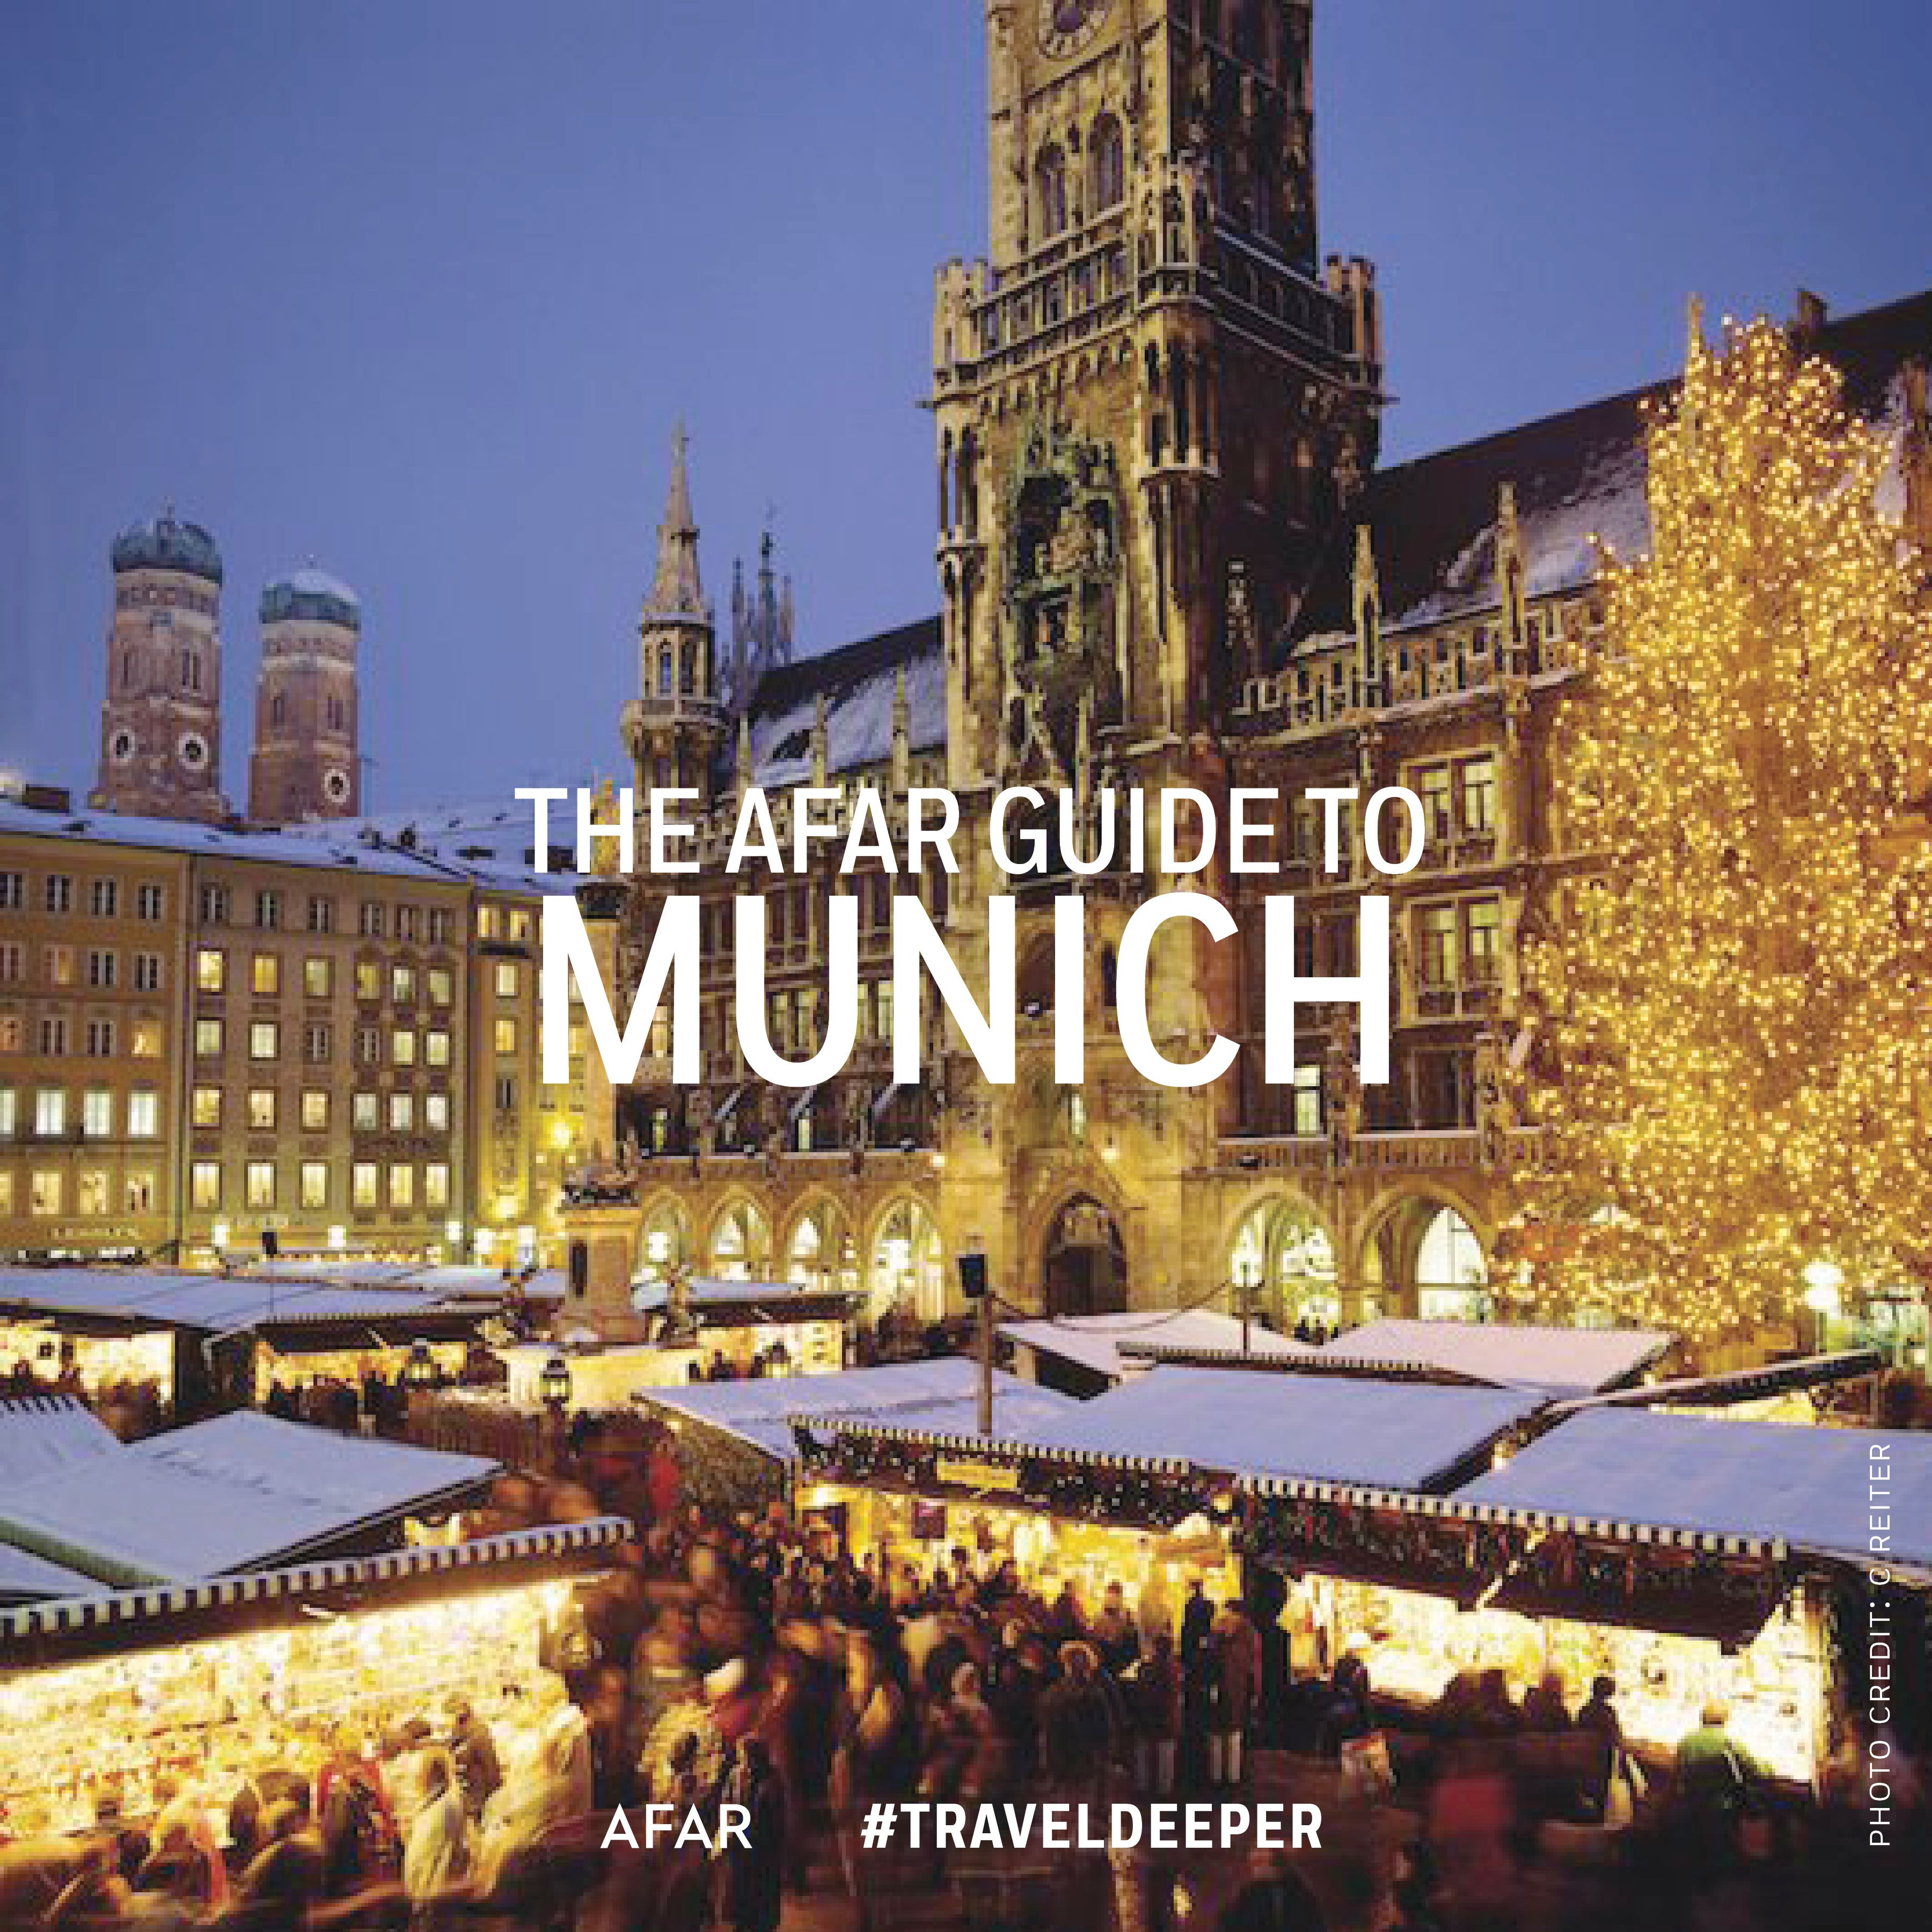 Munich Christmas In Germany Christmas In Europe Christmas Markets Europe